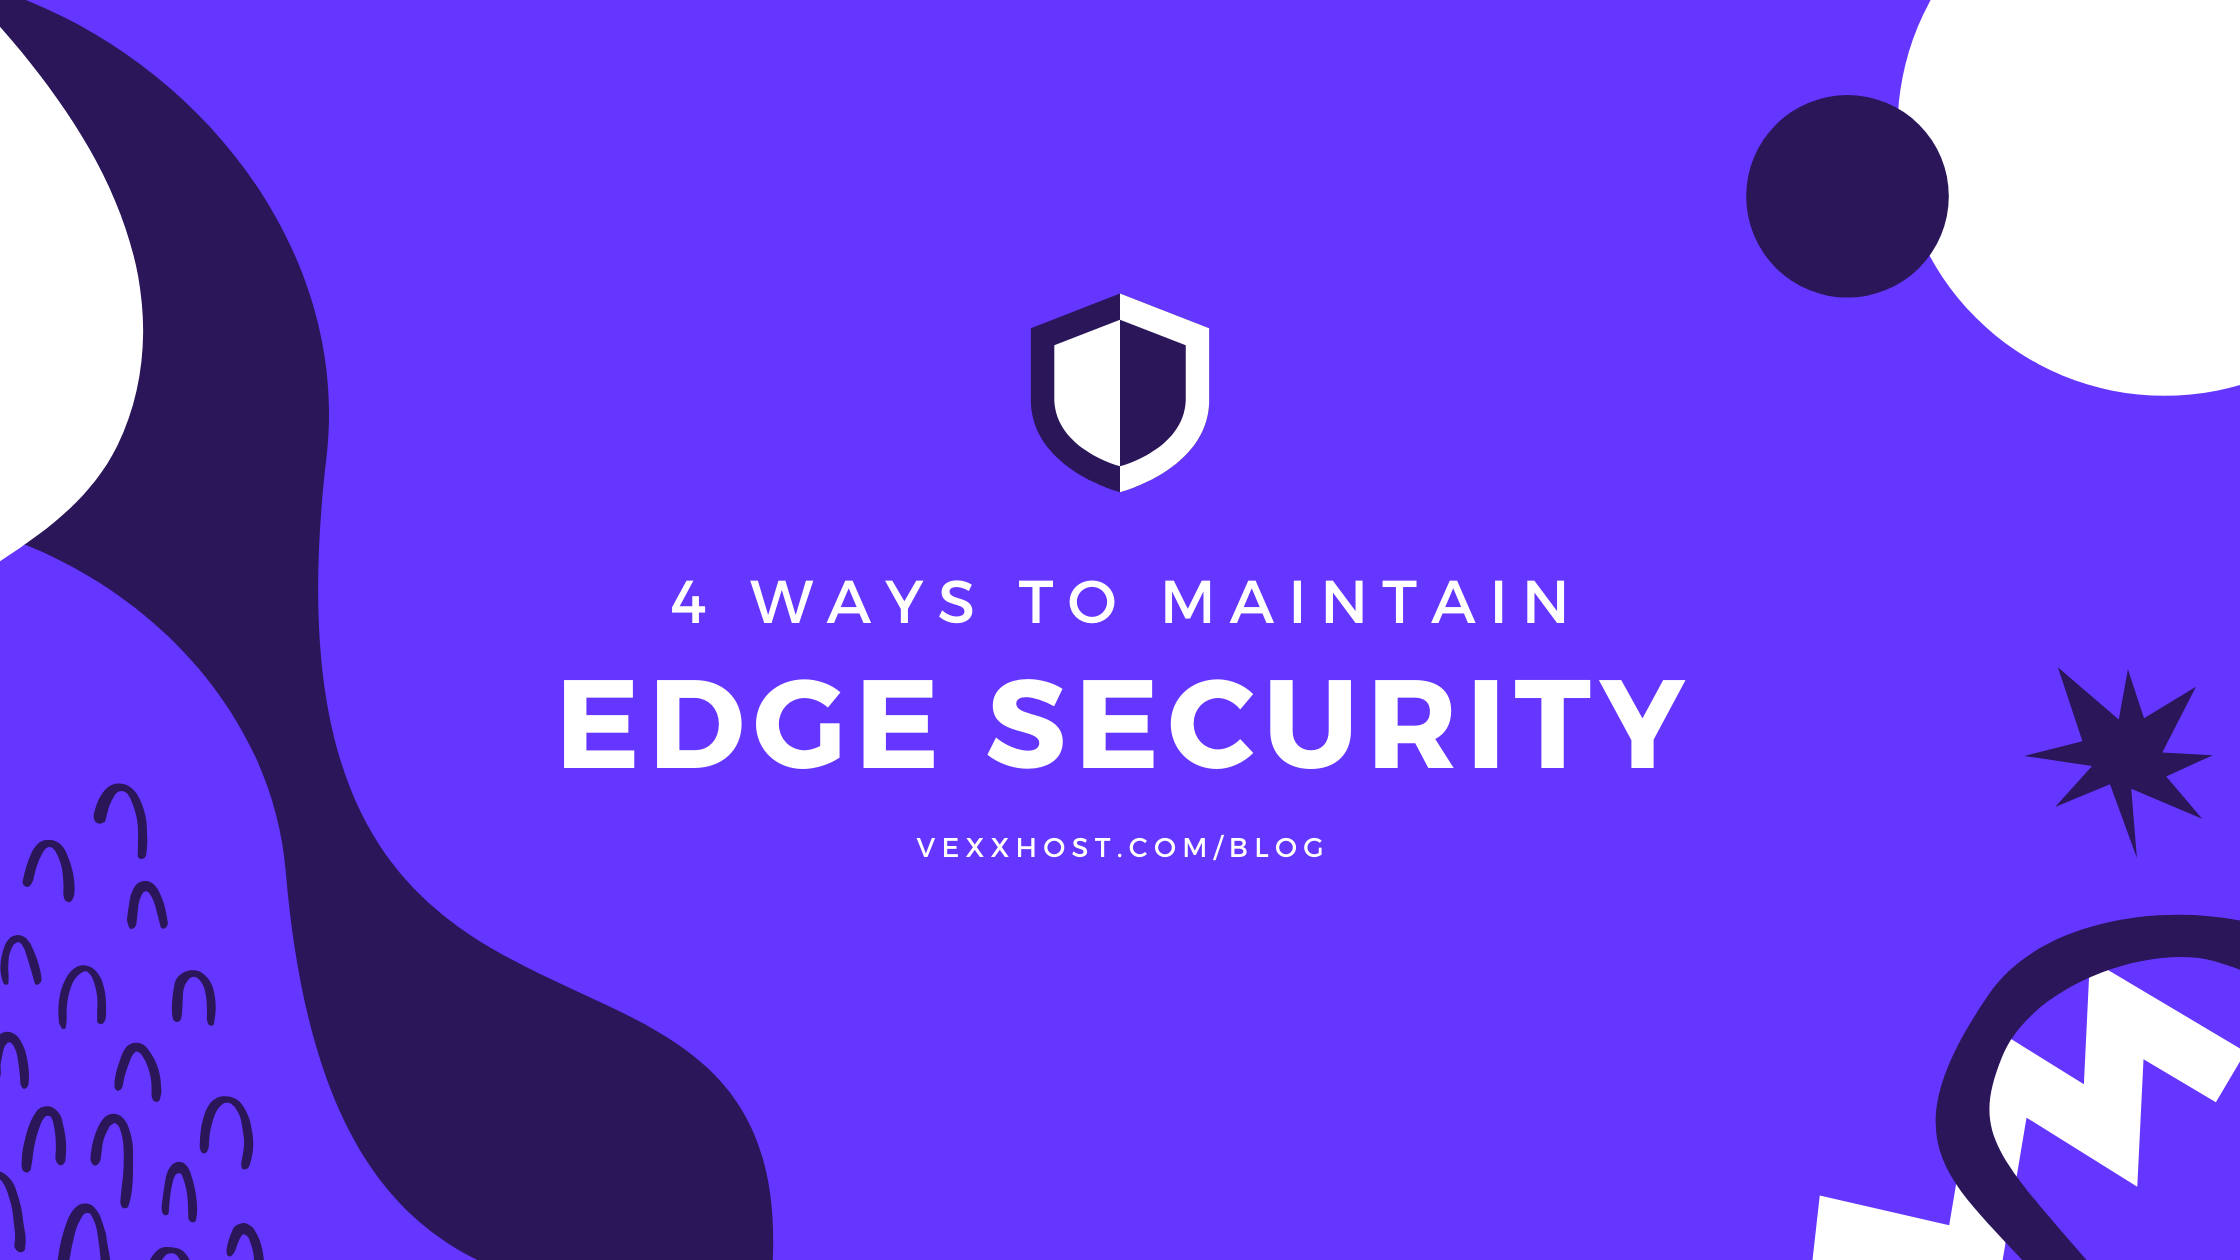 4 Ways To Maintain Edge Security